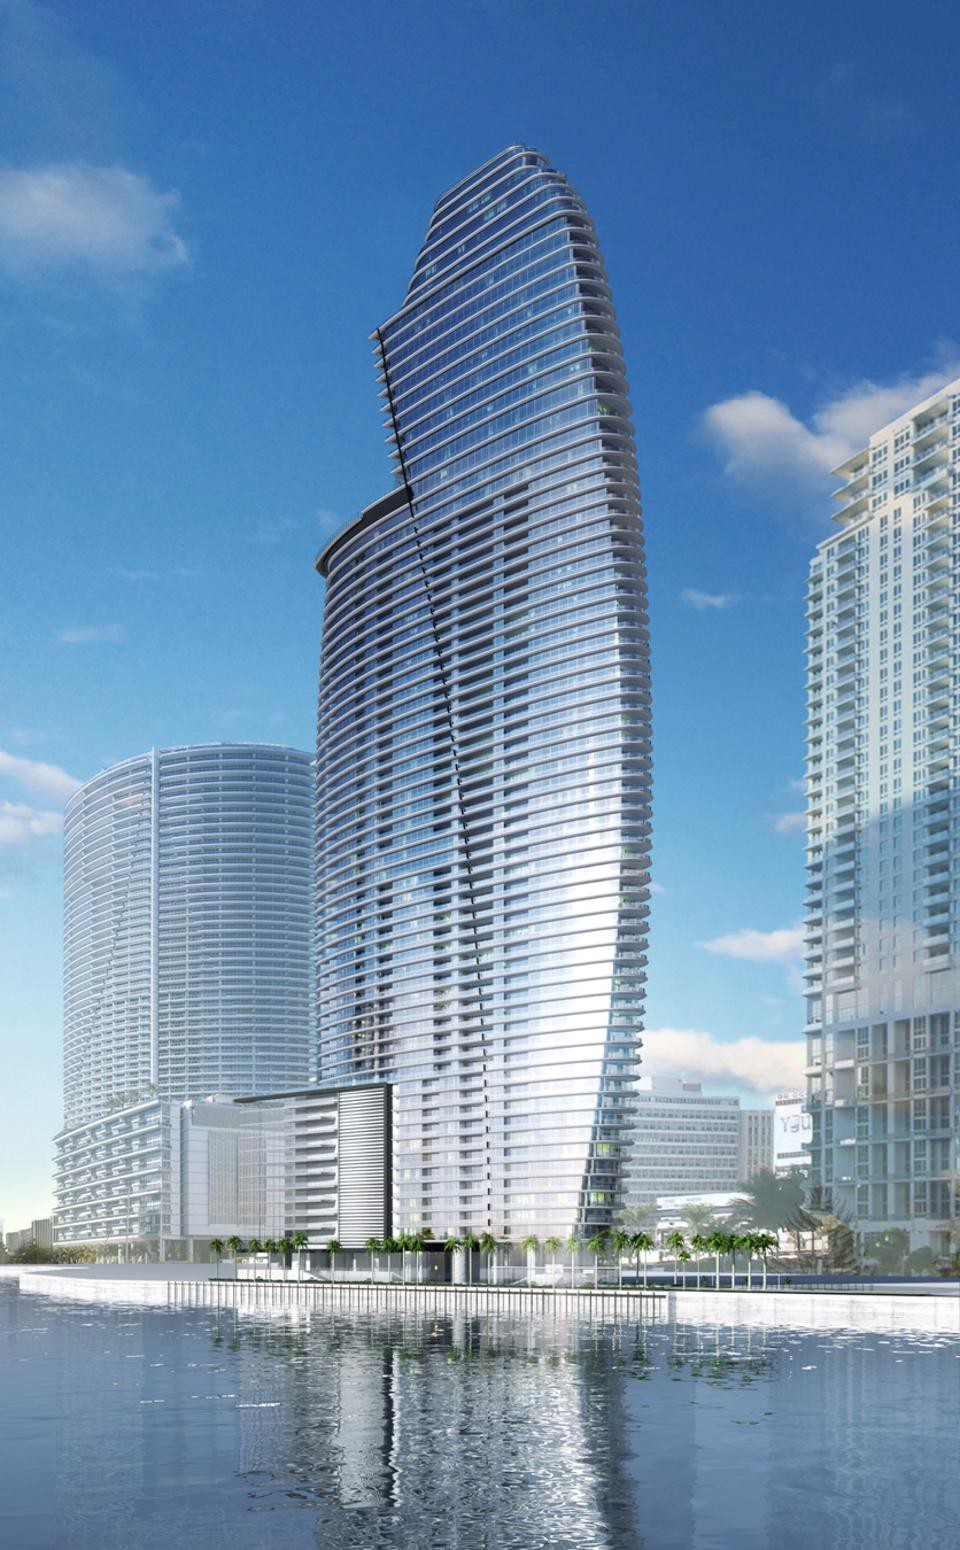 Aston Martin plans to open luxury highrise residences in Miami in 2021